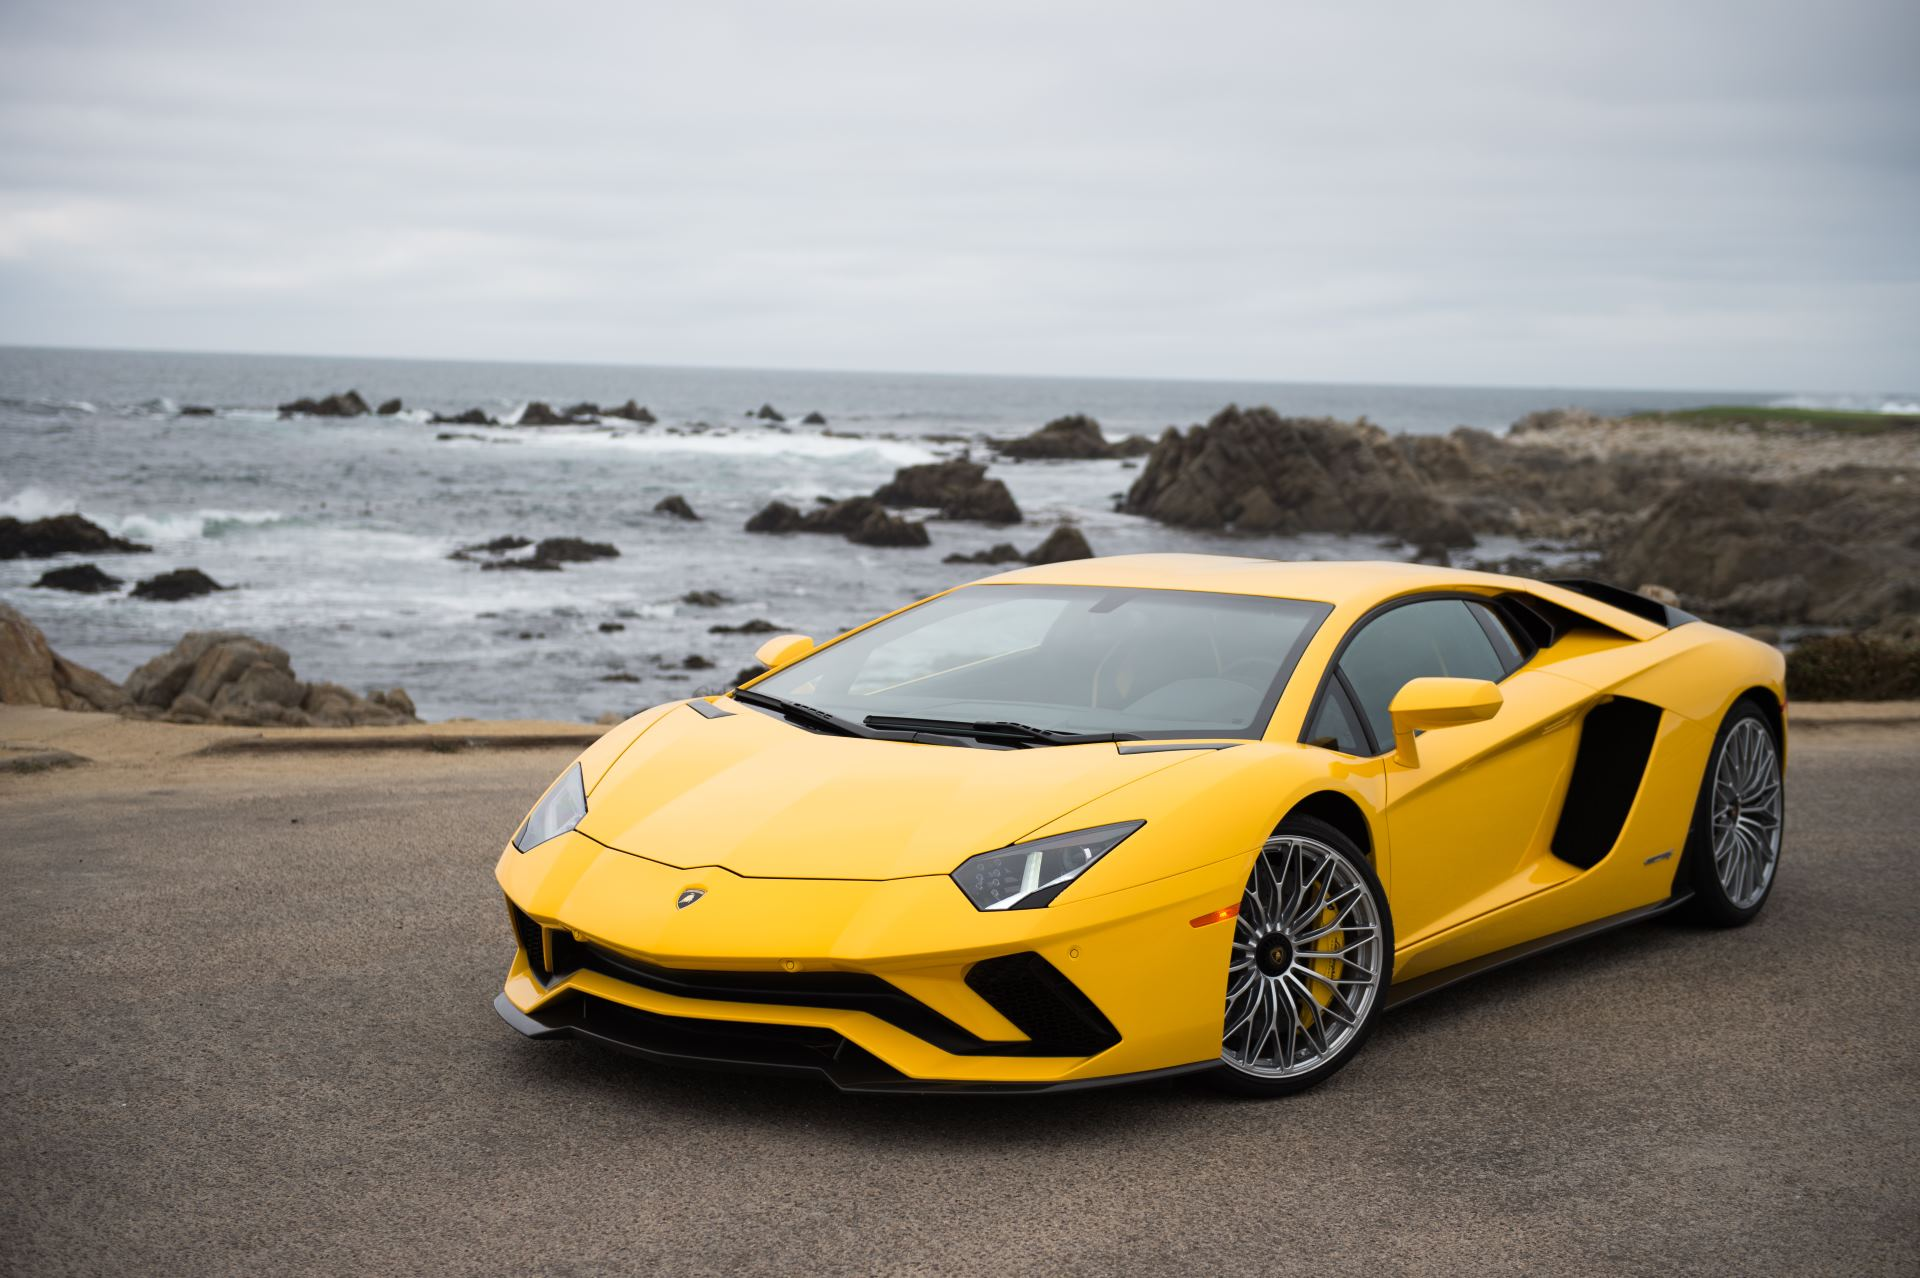 Lamborghini Aventador S at Pebble Beach 03